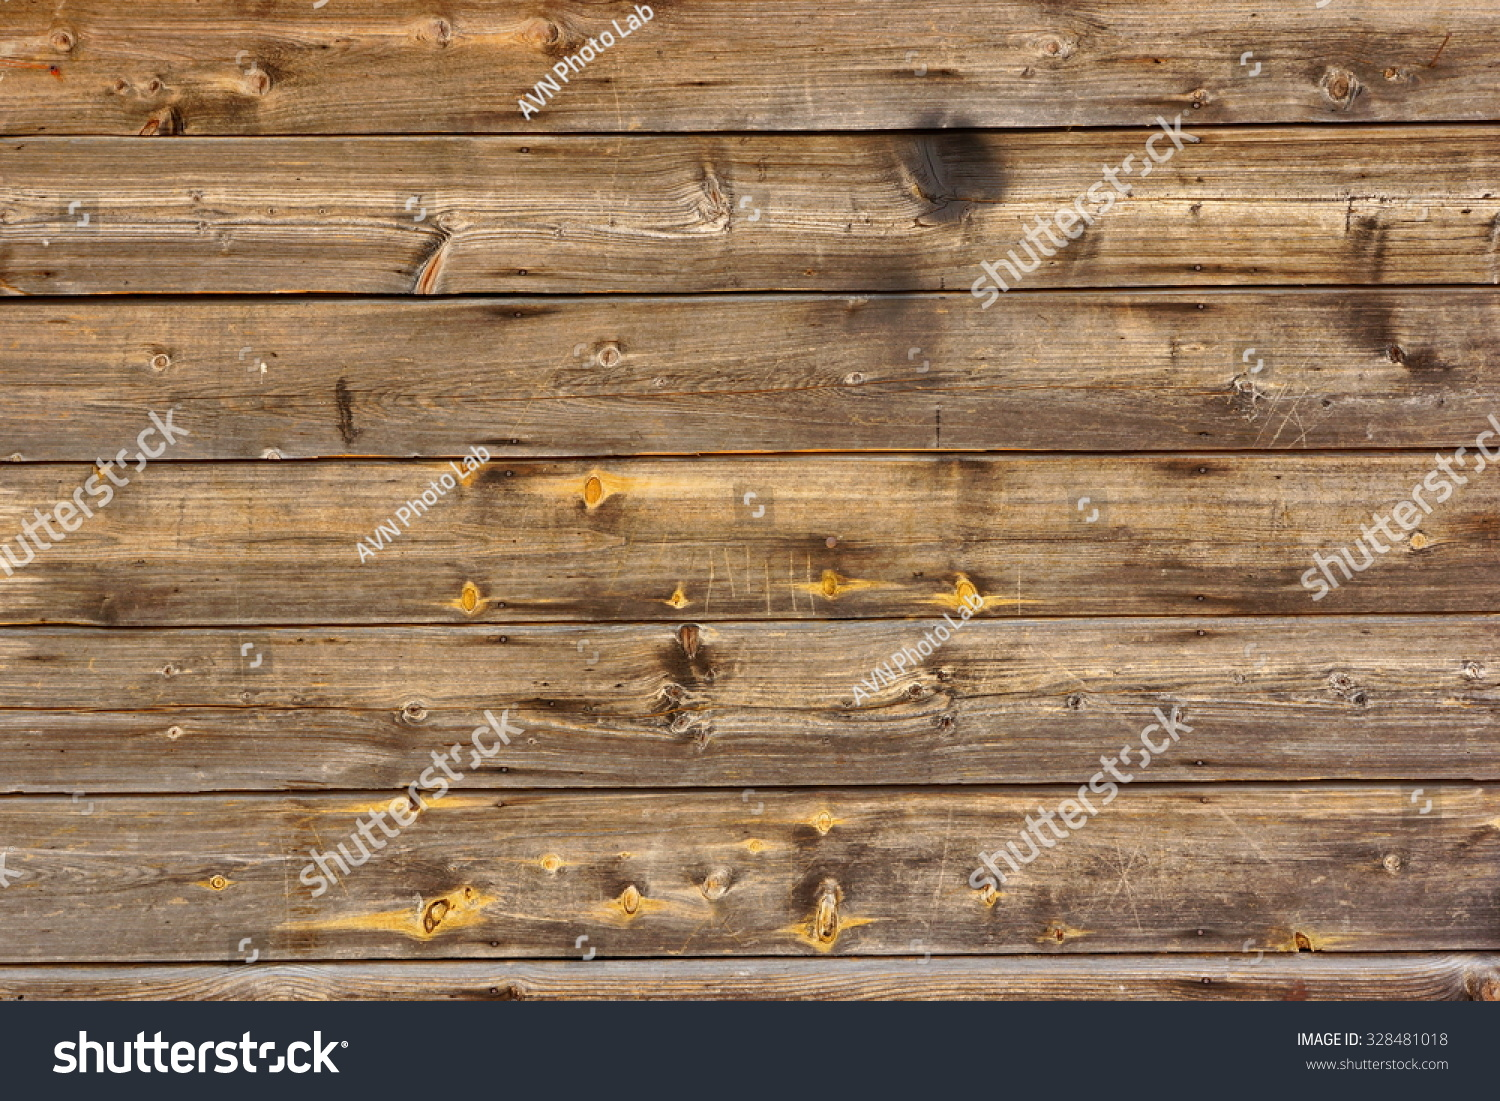 Old Scratched Brown Empty Wood Panel Horizontal Texture Background Close-up - Old Scratched Brown Empty Wood Panel Stock Photo 328481018